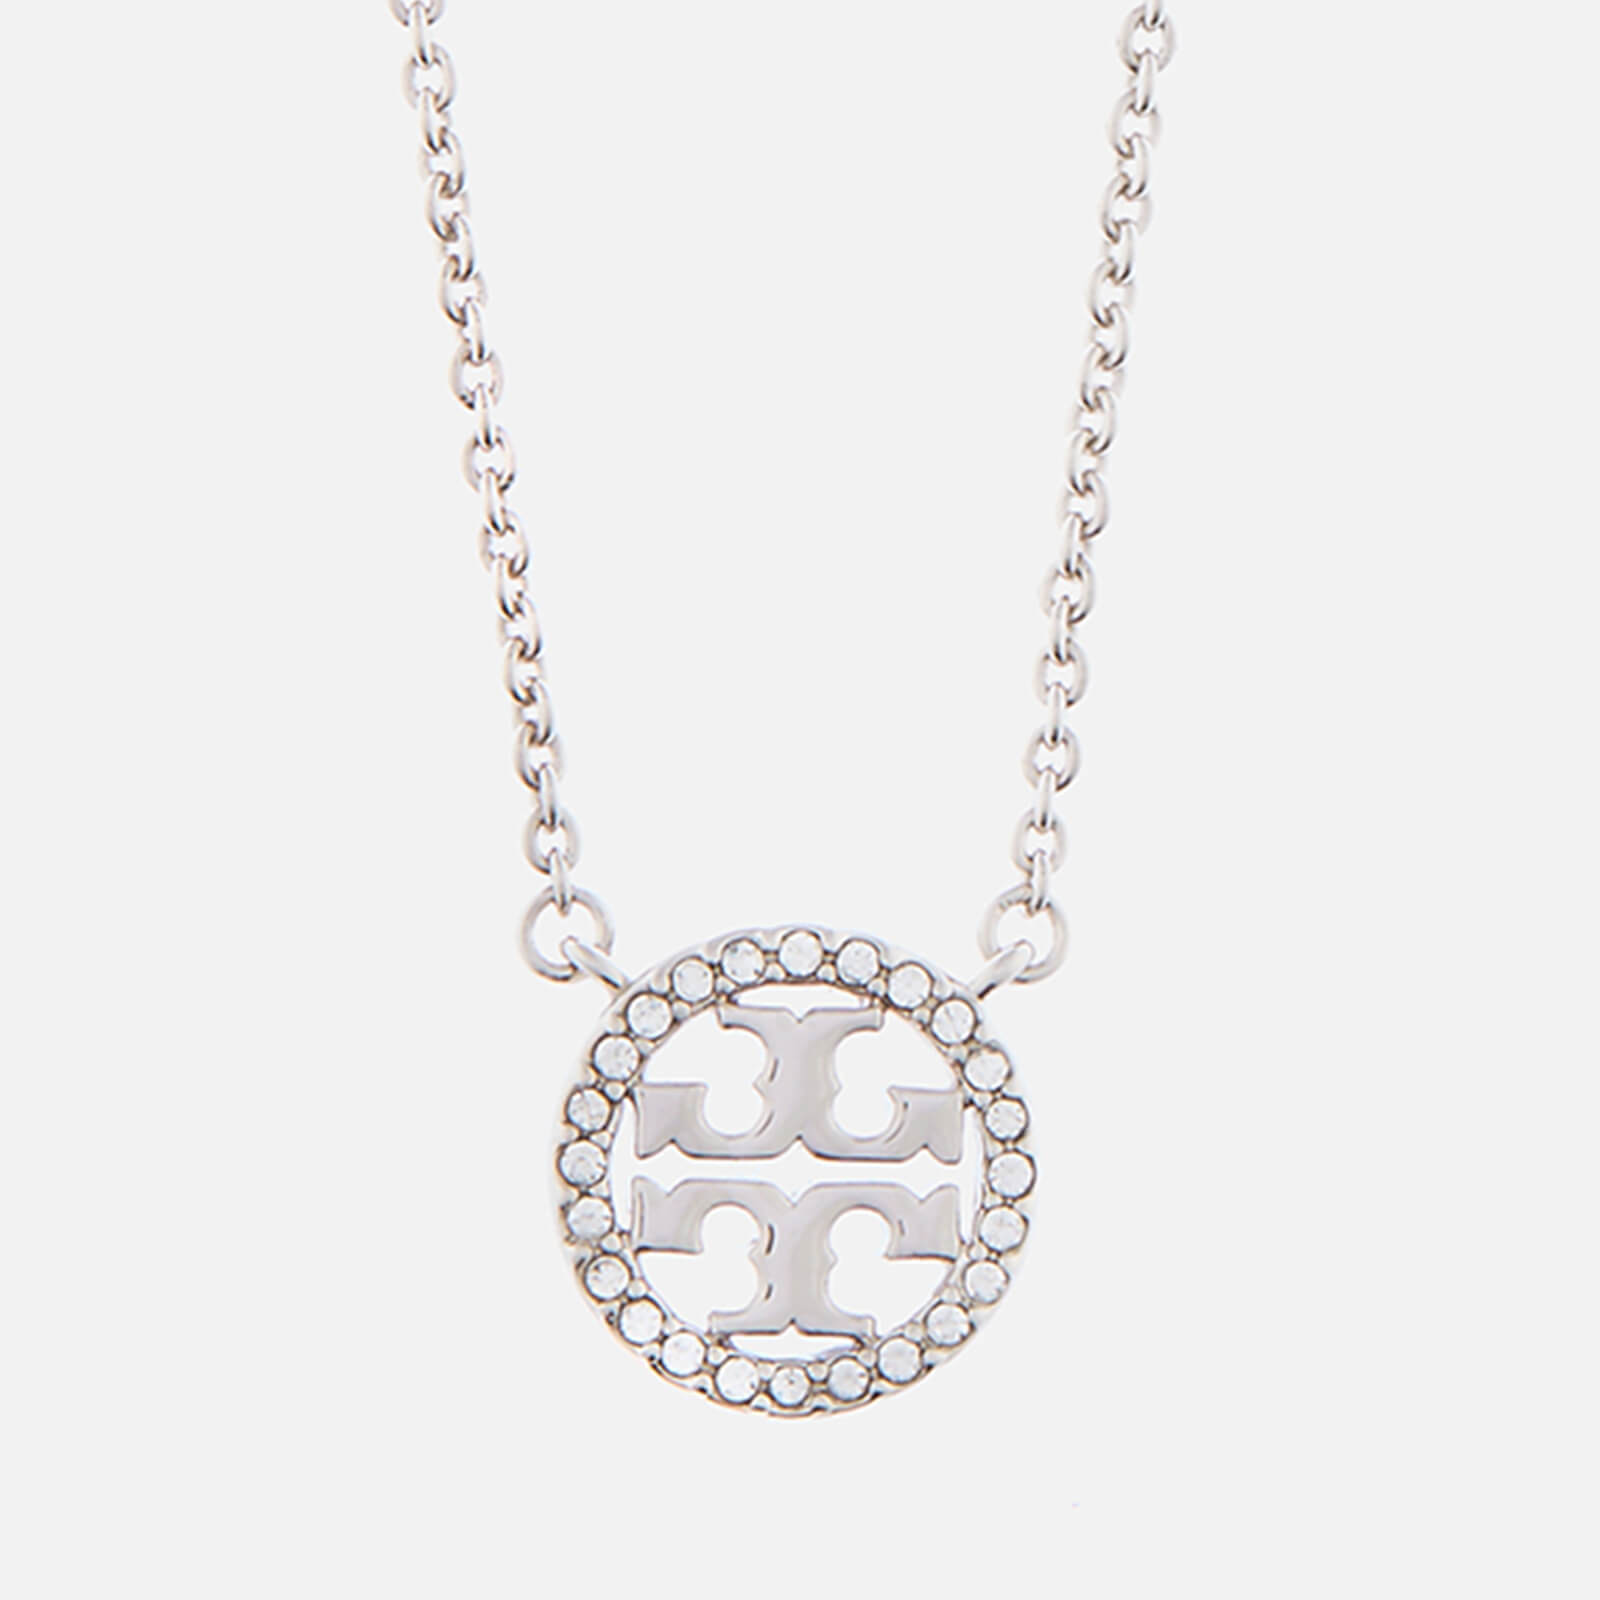 Tory Burch Women's Crystal Logo Delicate Necklace - Tory Silver